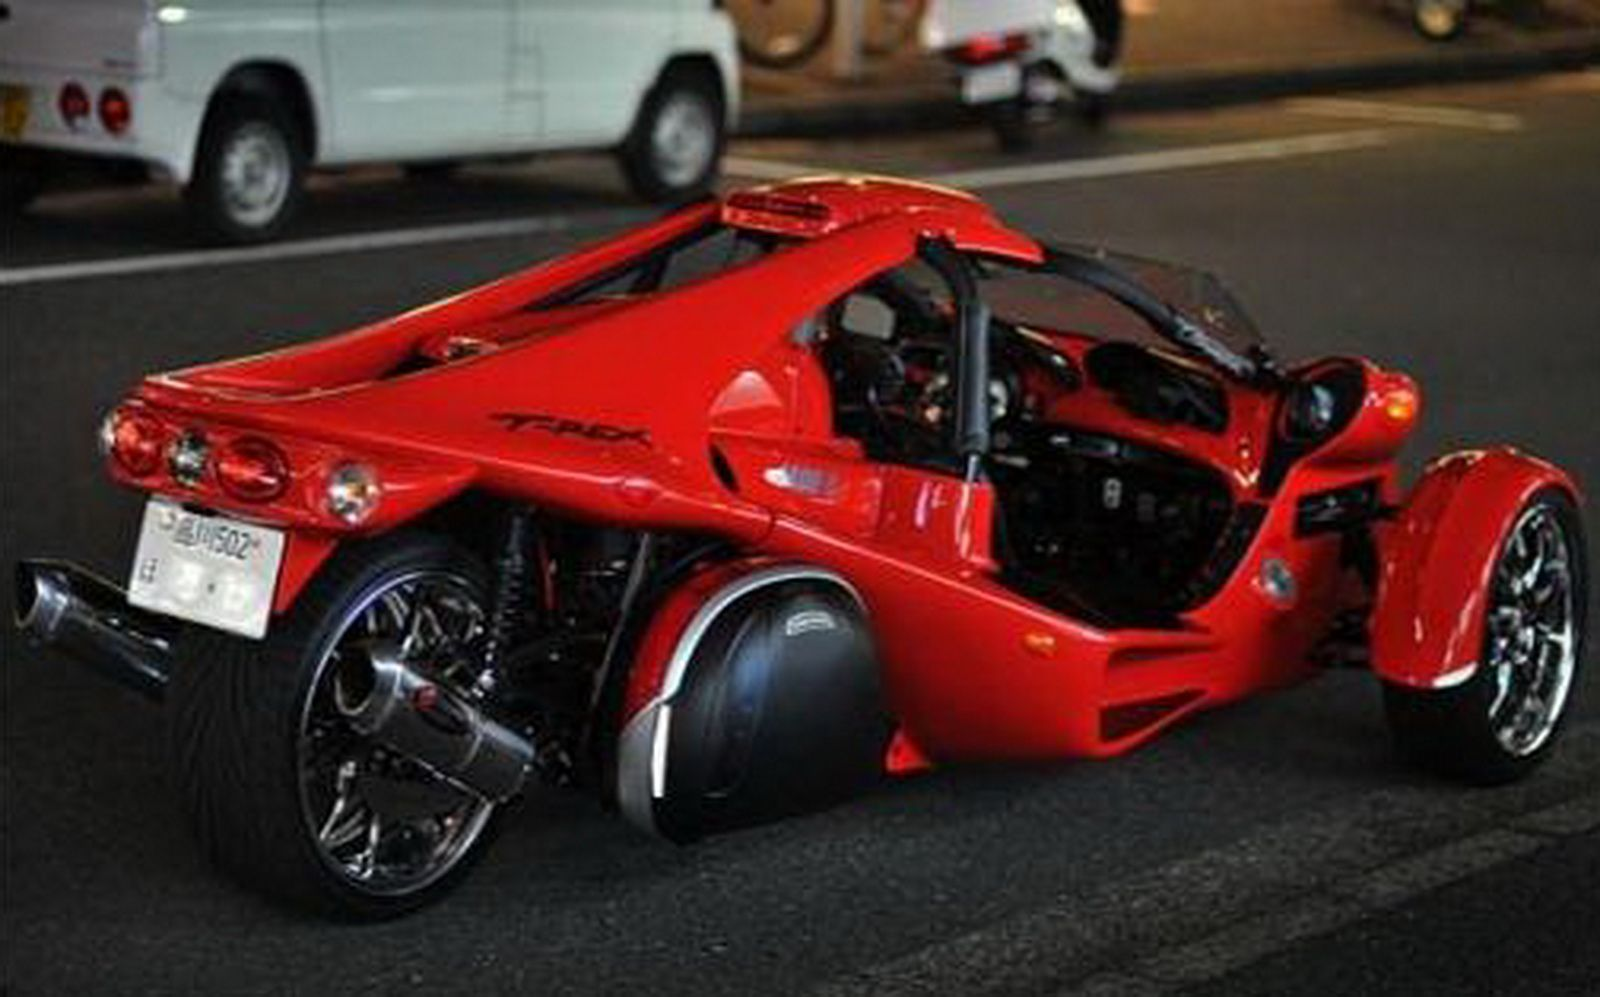 The Campagna T-Rex is a two-seat, three-wheeled cyclecar ...